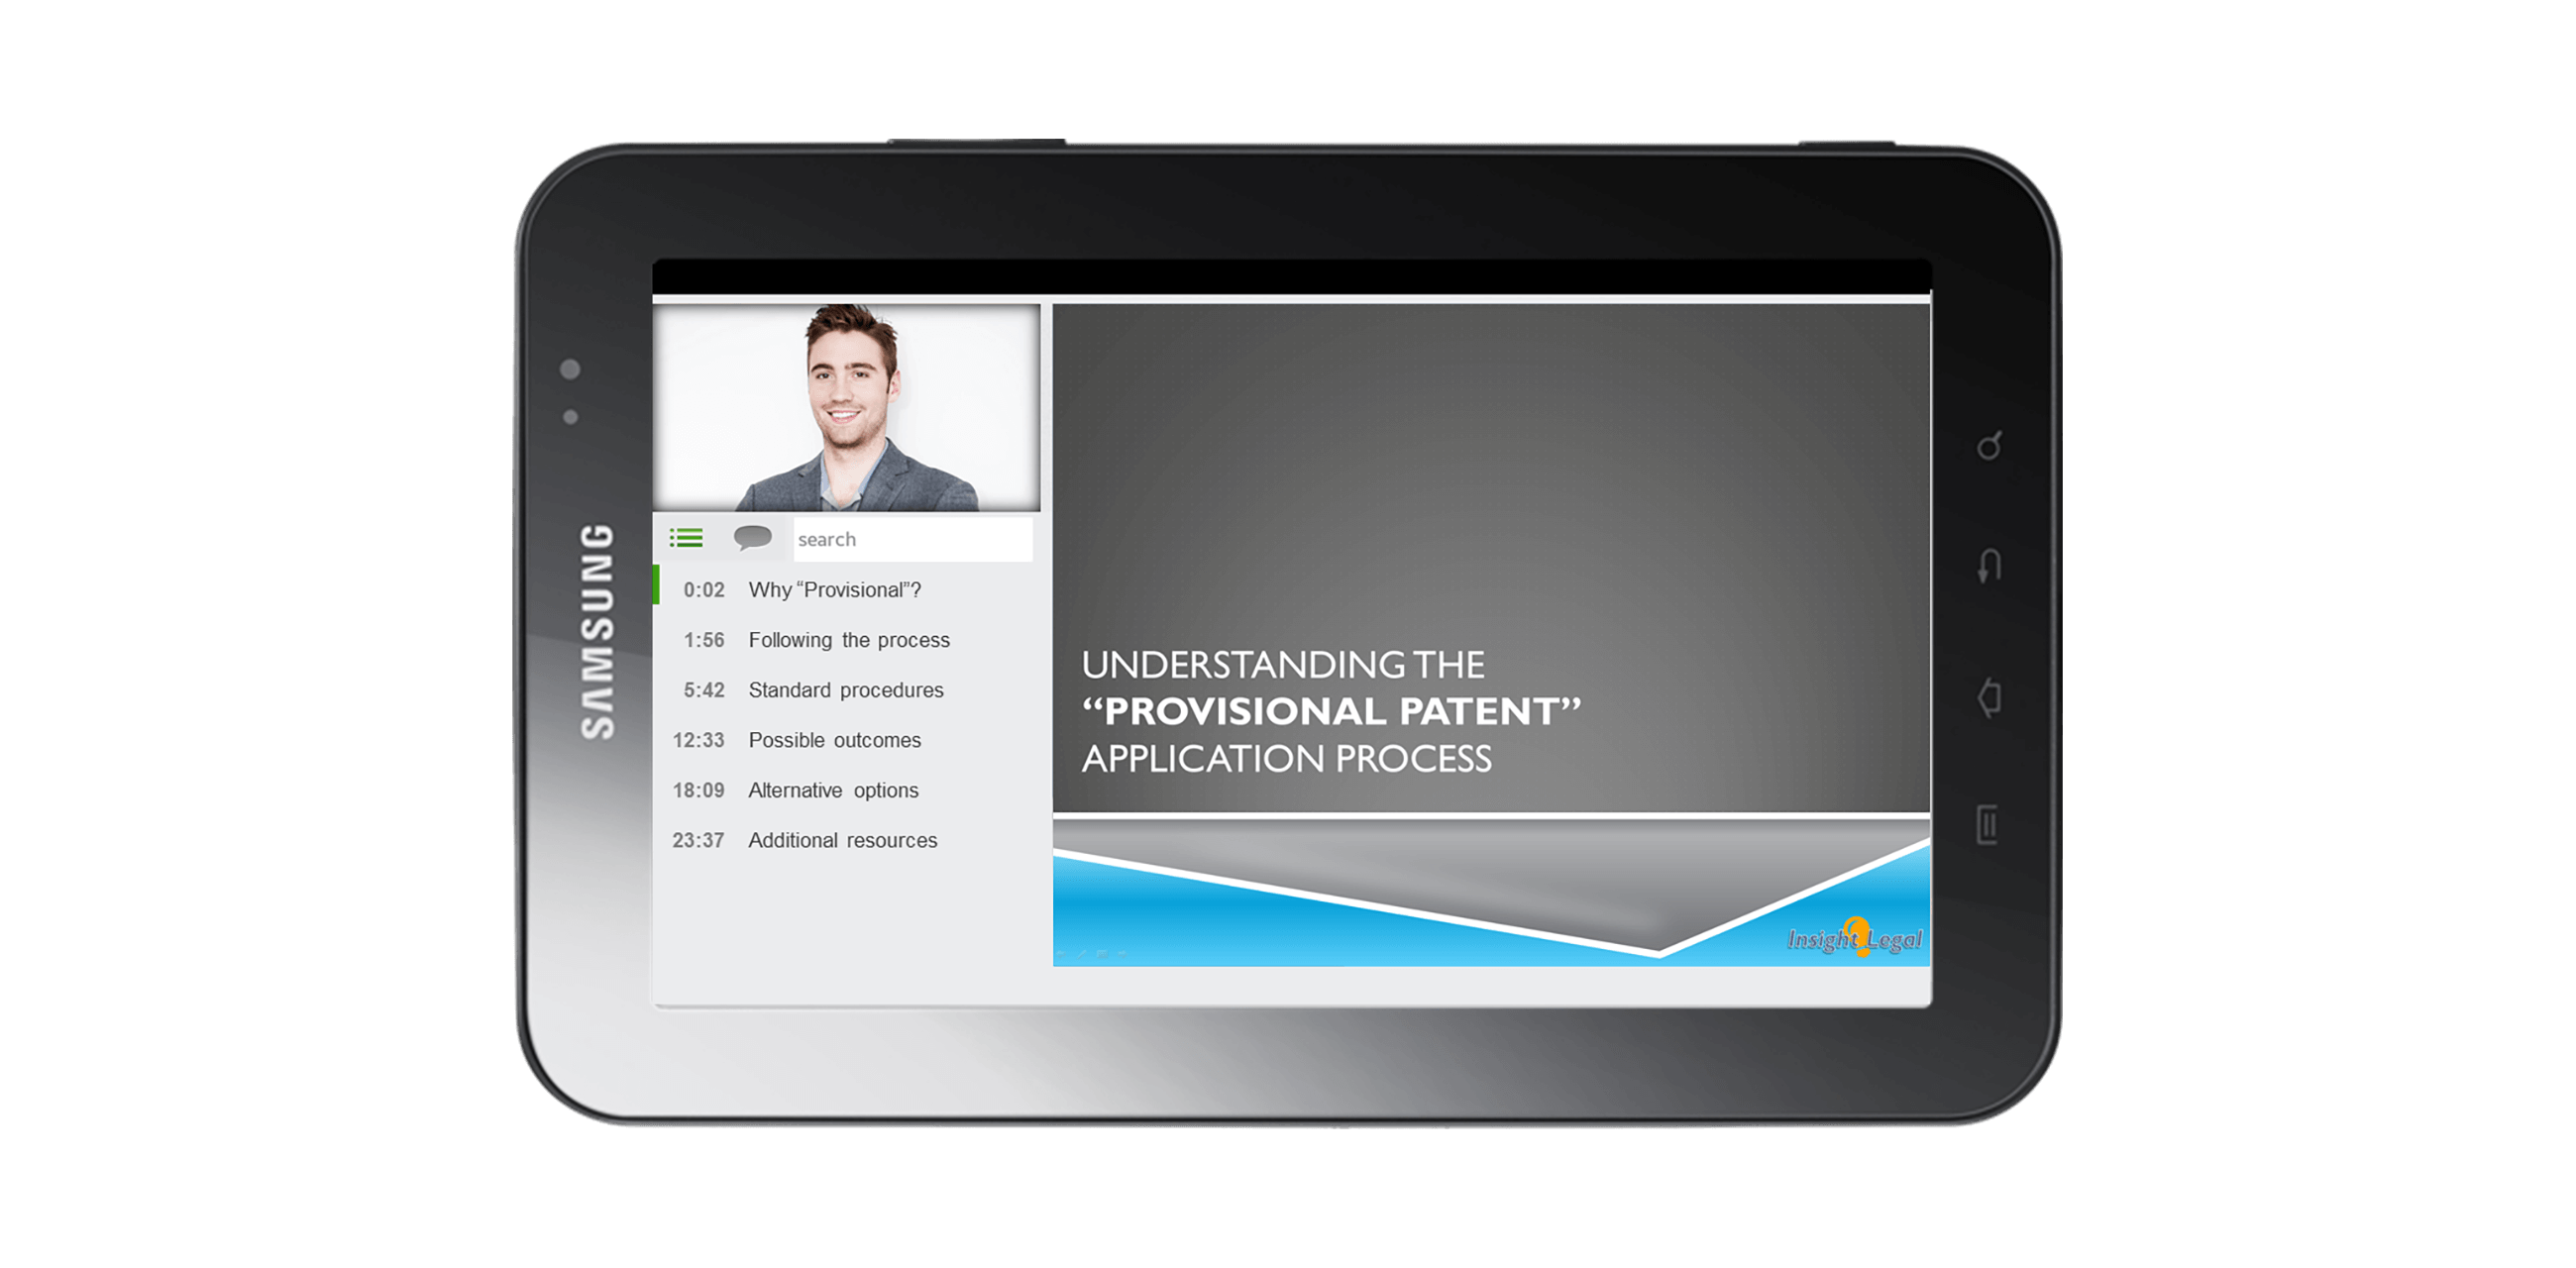 Panopto's mobile video platform enables users to view video securely on Samsung tablets